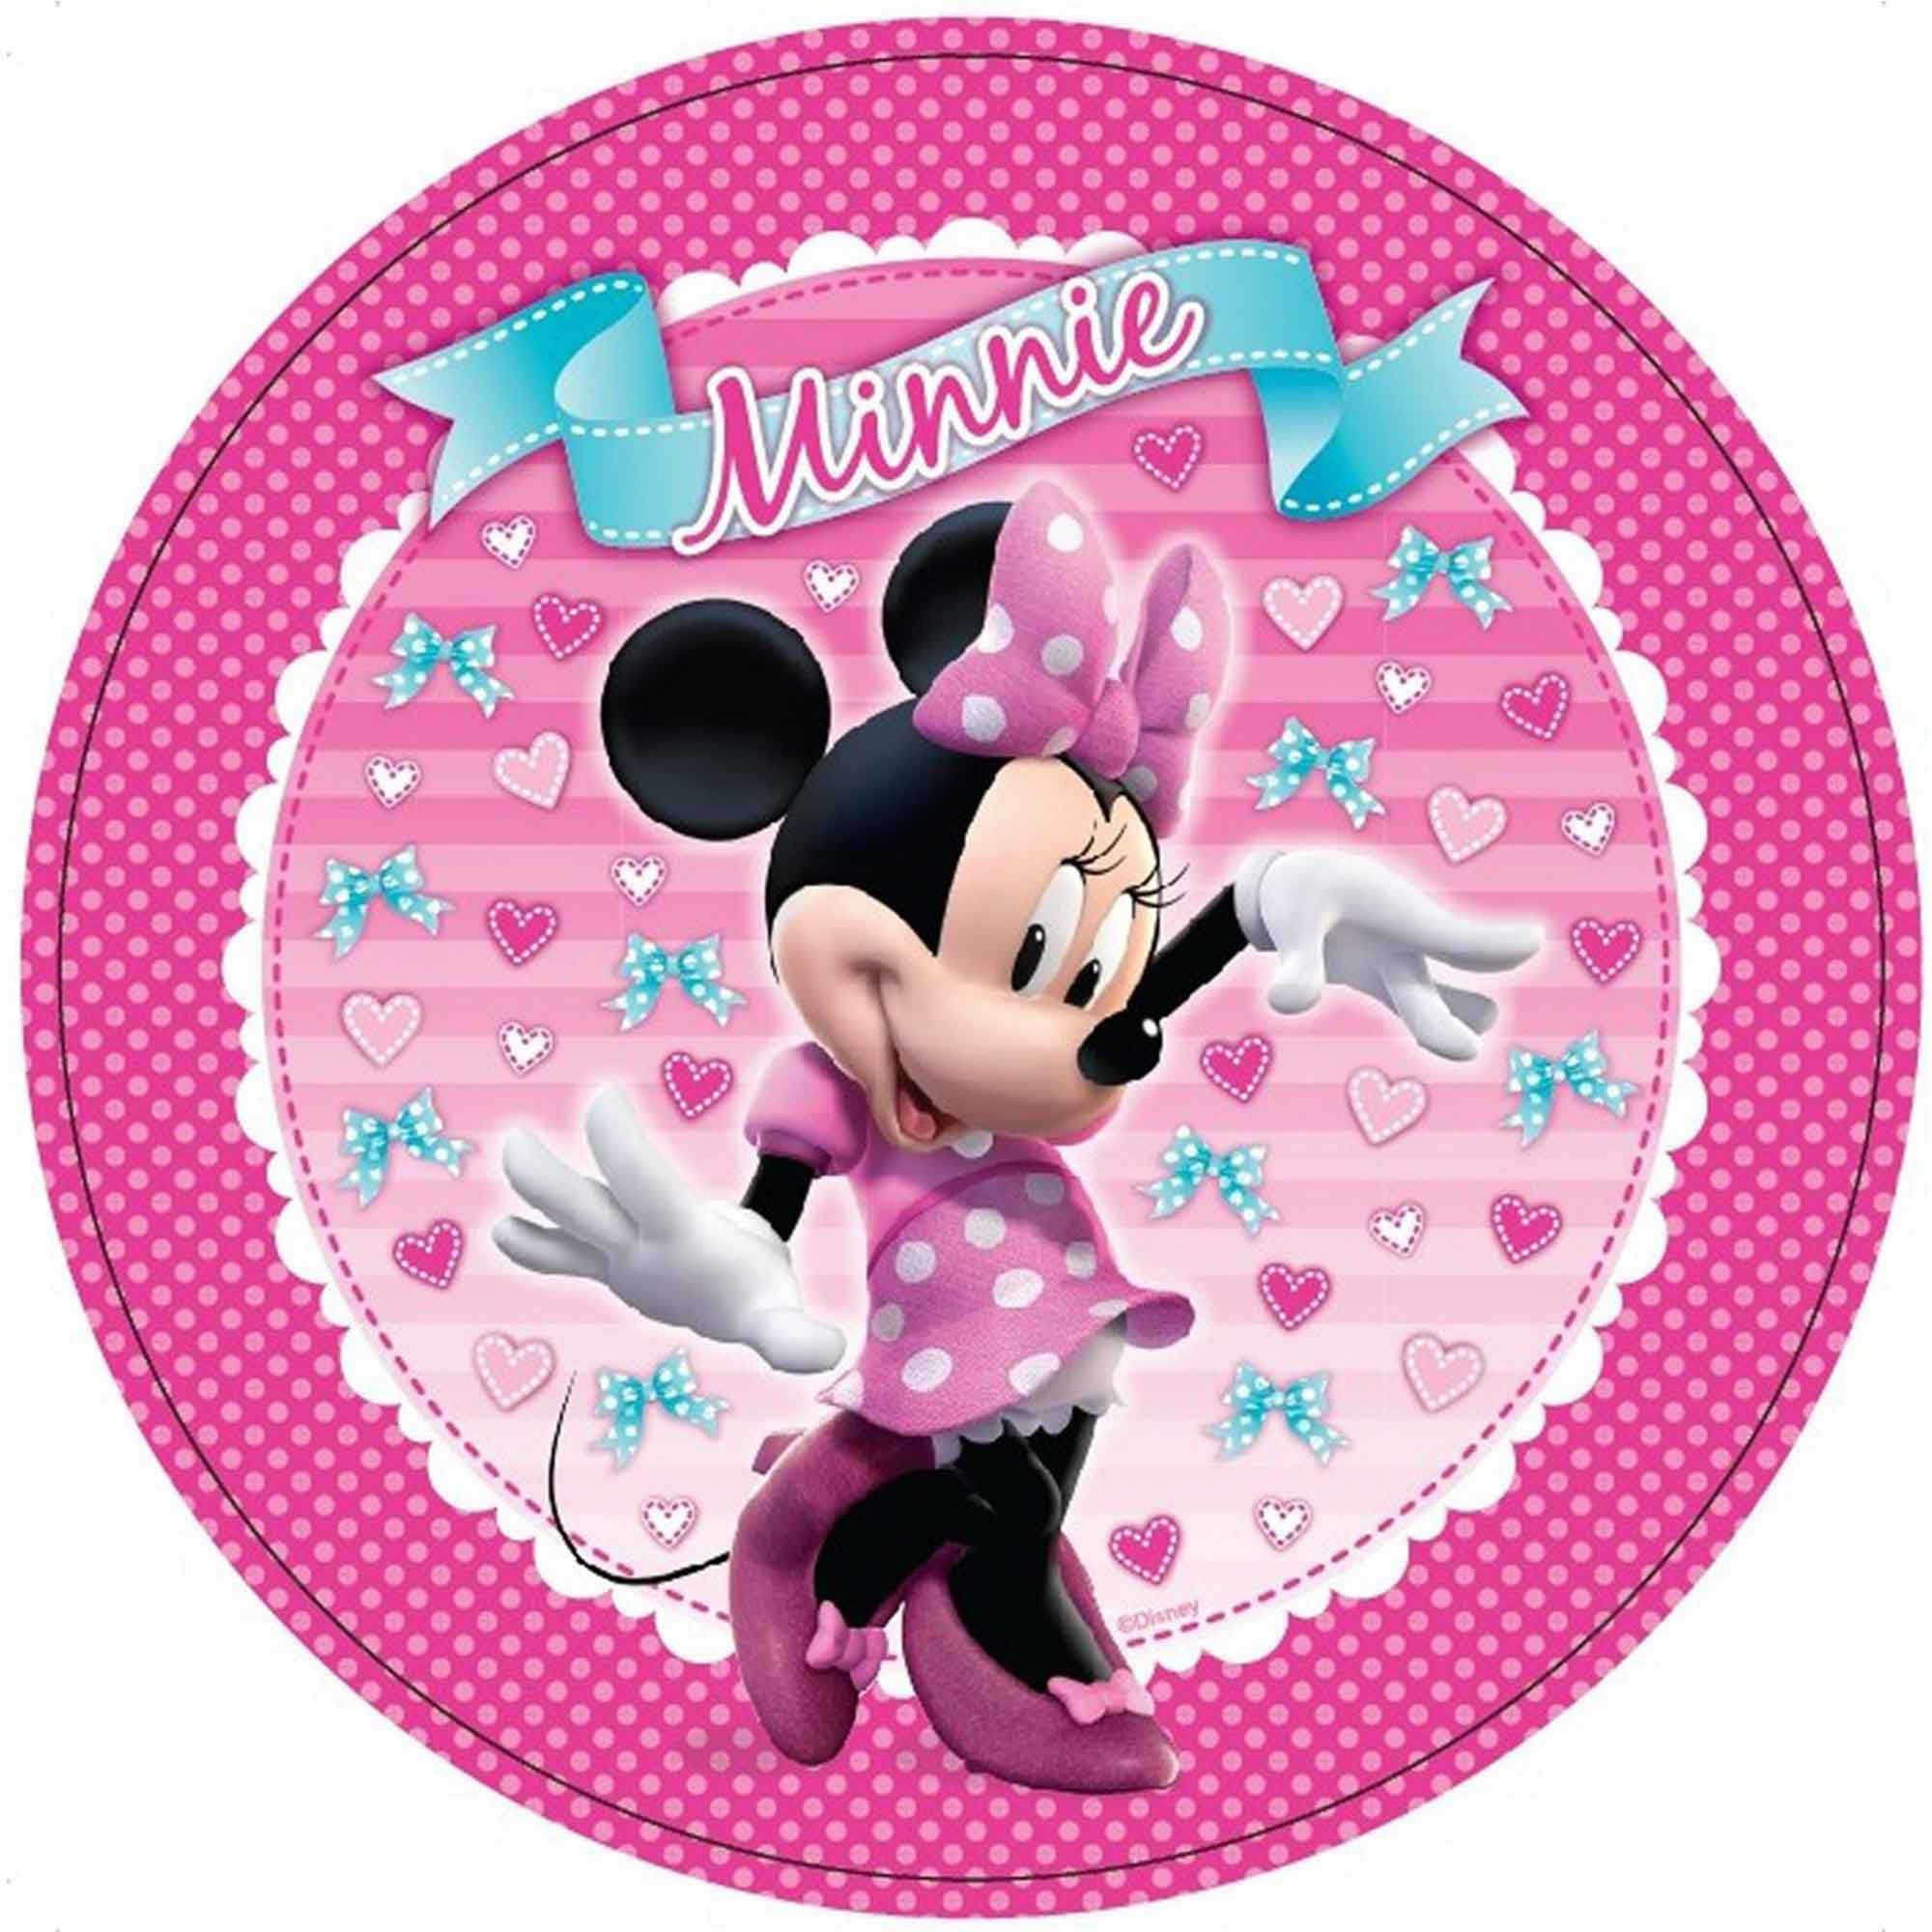 Minnie Mouse 23cm Round Plates